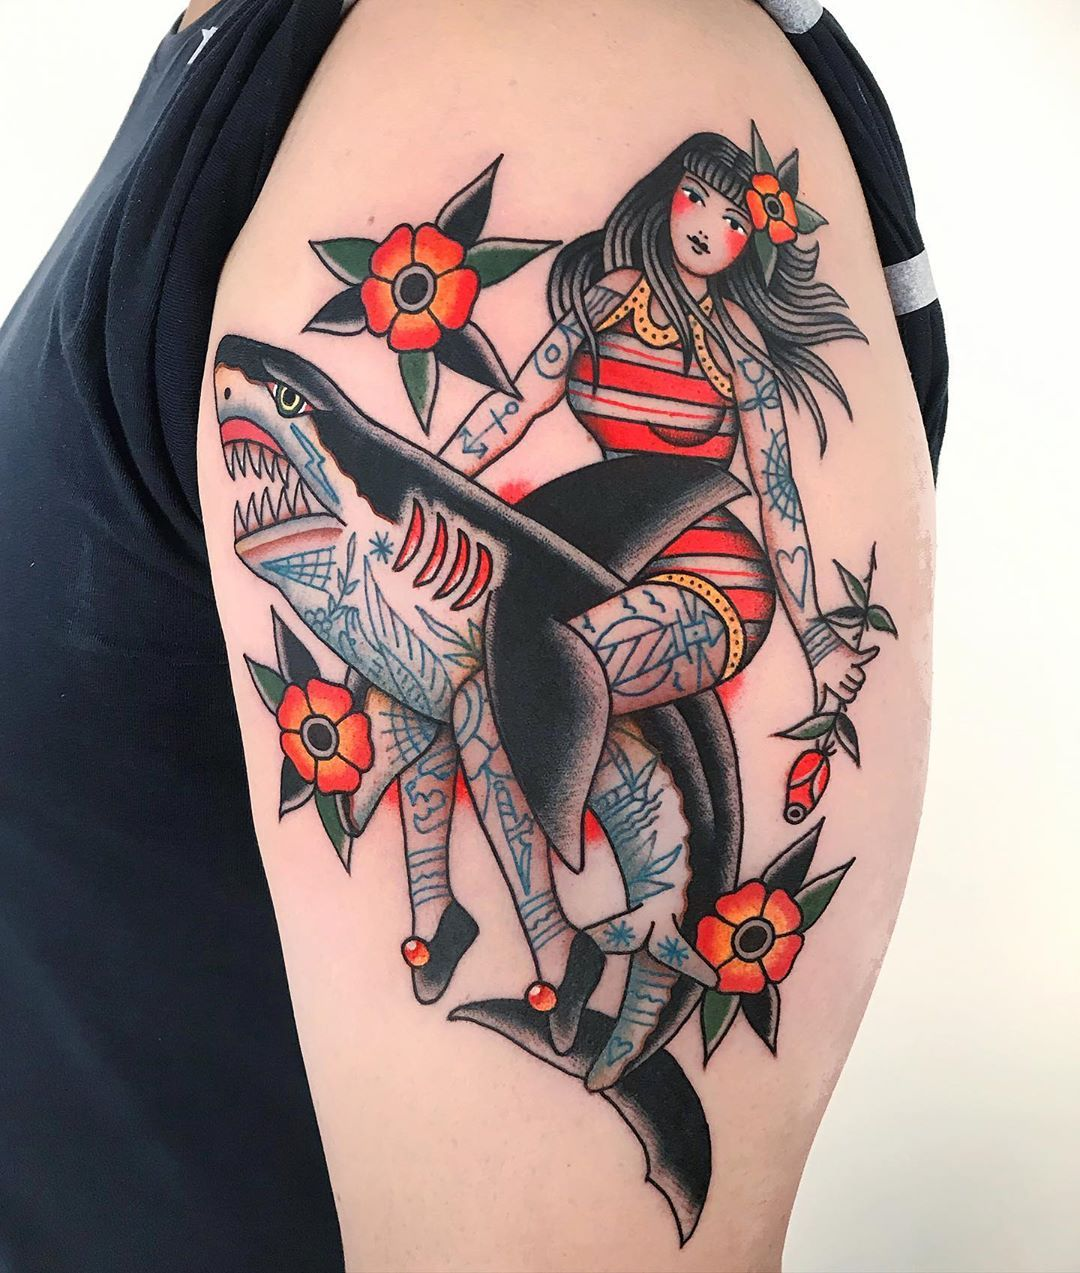 5 817 Likes 24 Comments Dani Queipo Daniqueipo On Instagram London Traditionaltattoo Tattoo Eastlondon Sangbleutattoolondon In 2020 Tattoos